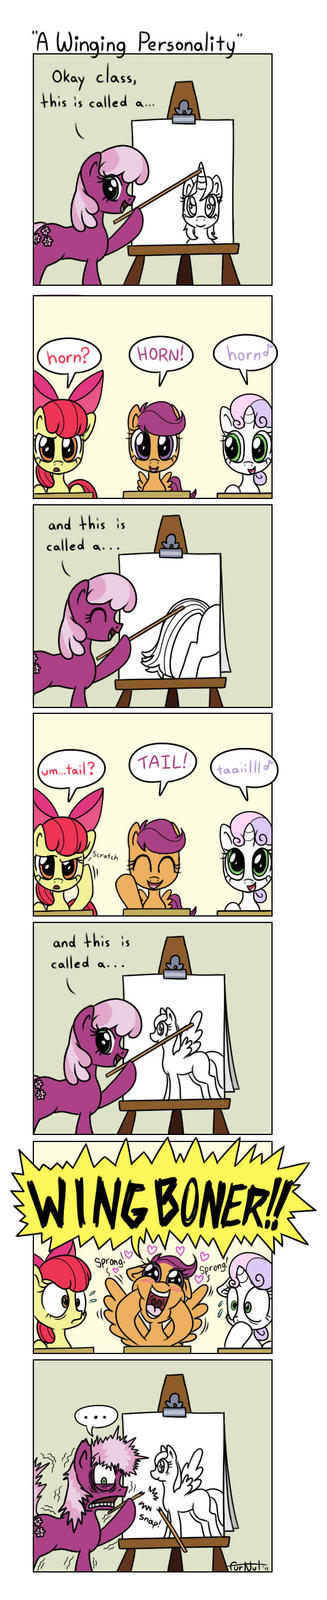 mlpwbcomiccolor.jpg